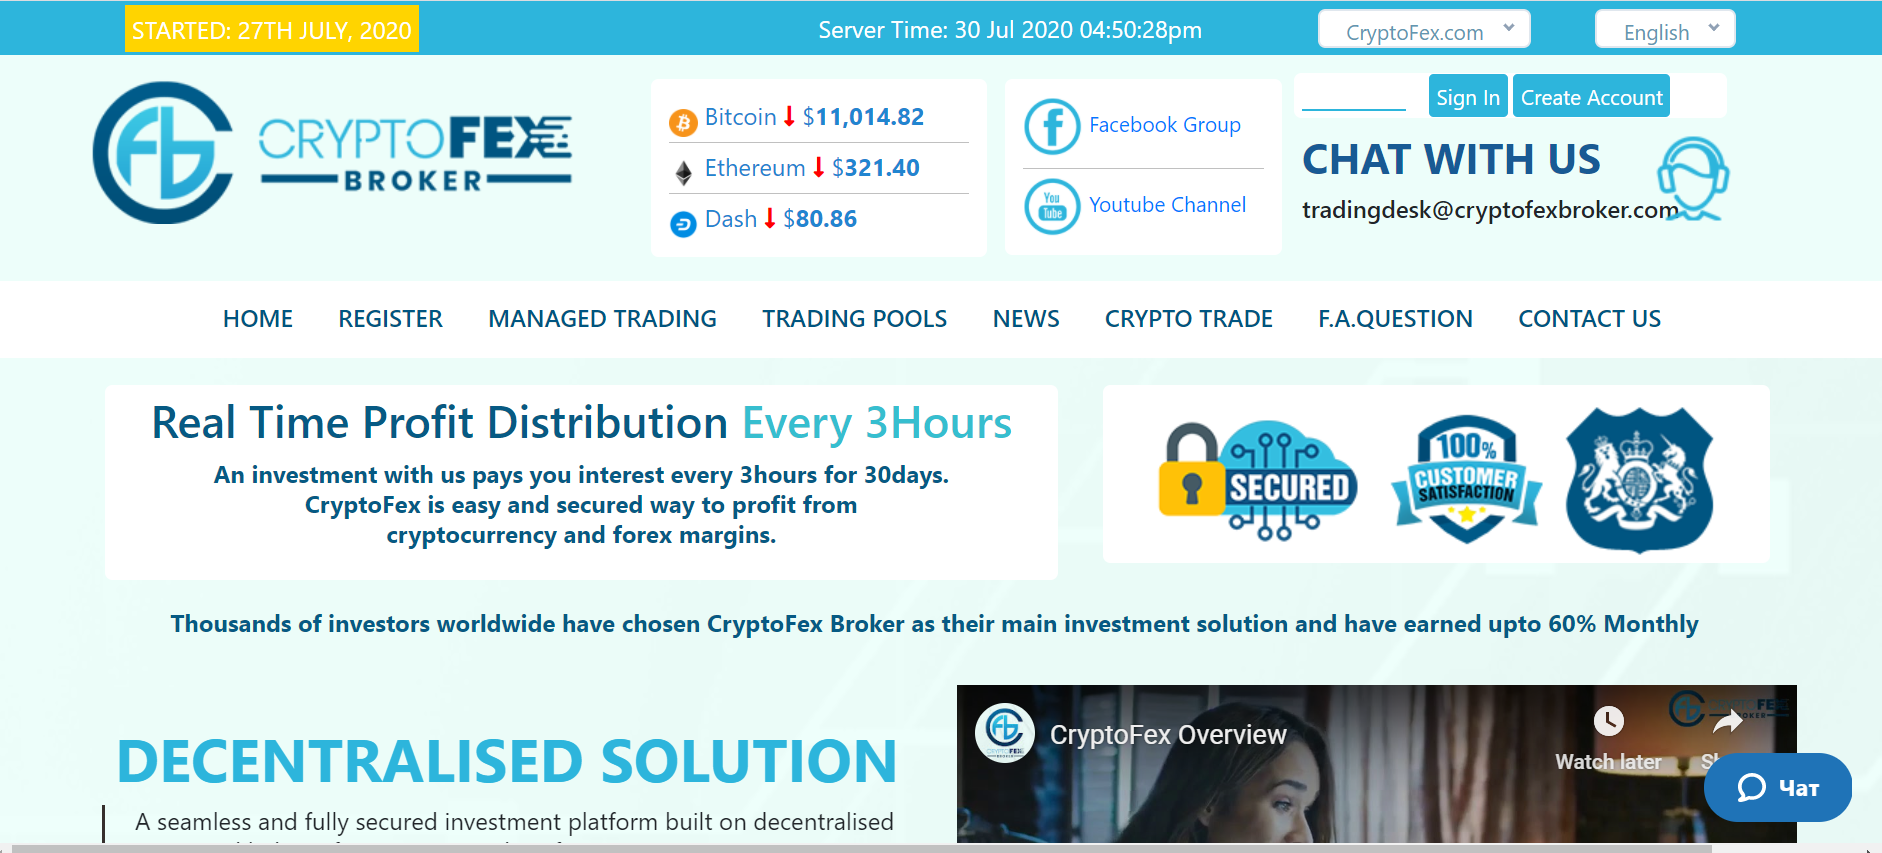 cryptofexbroker.com review